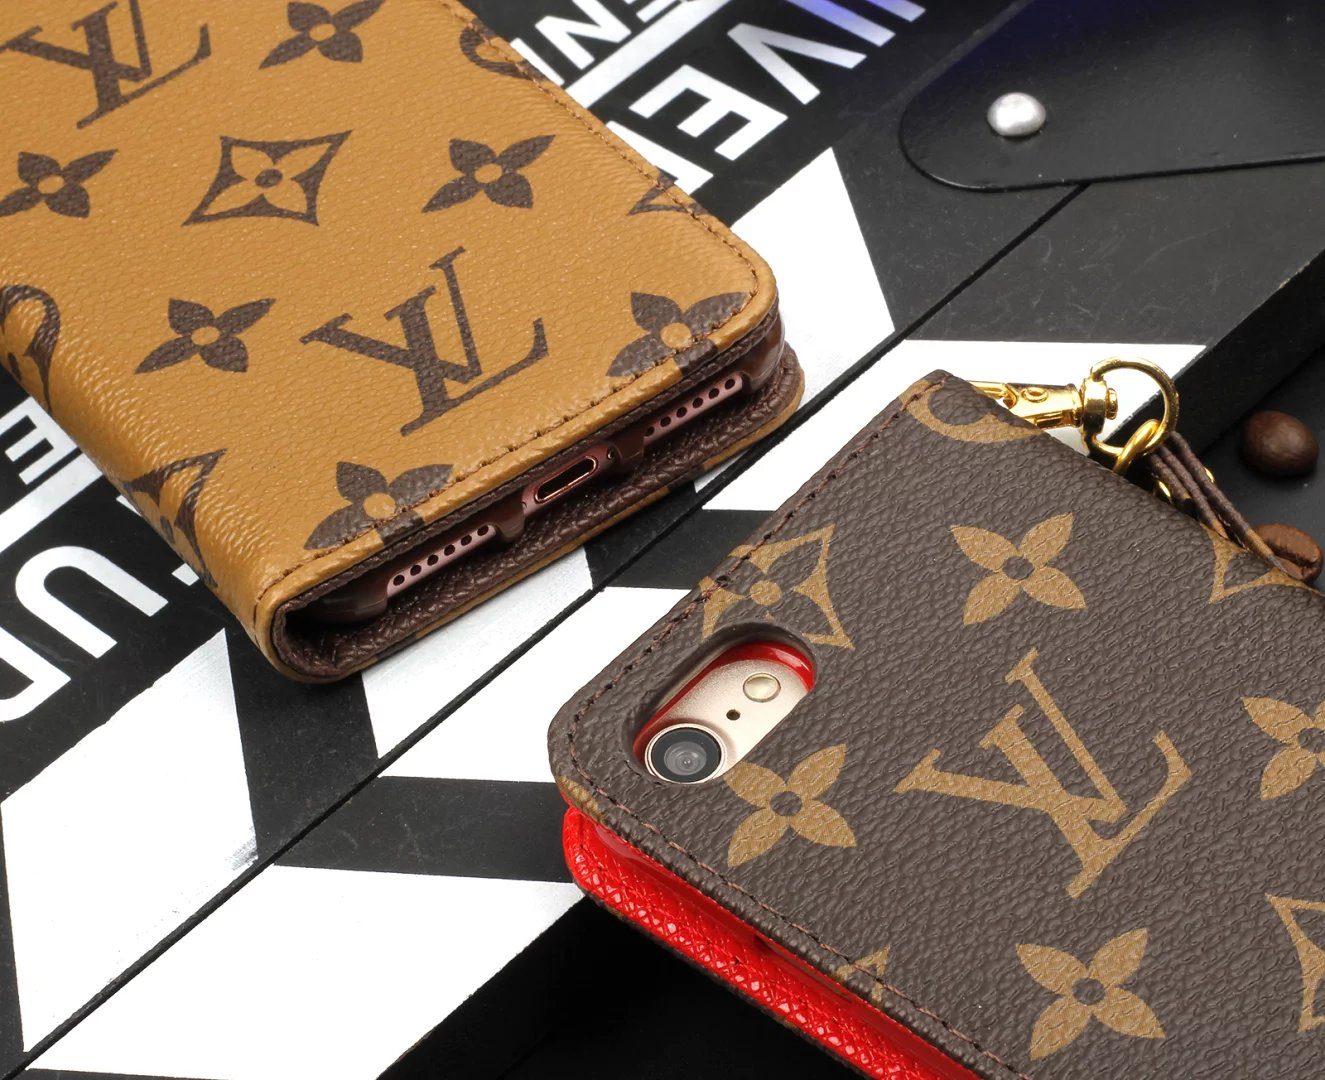 iphone hülle selber machen iphone handyhülle Louis Vuitton iphone7 hülle neues apple iphone grös7r als iphone etui leder wann kommt das iphone handyhüllen machen las7n beste iphone hülle